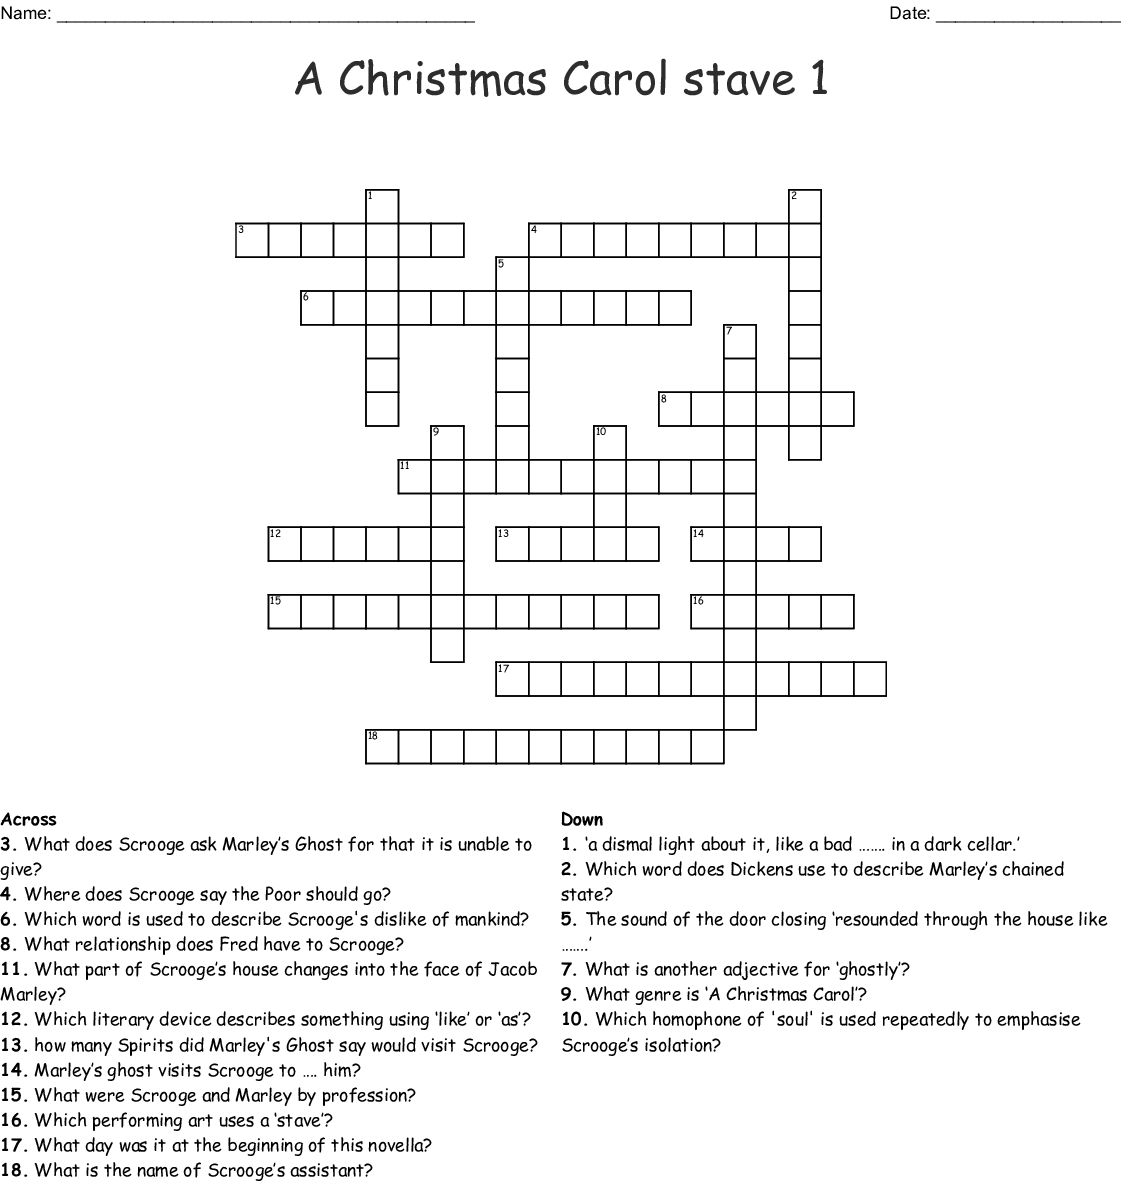 A Christmas Carol Stave 1 Crossword